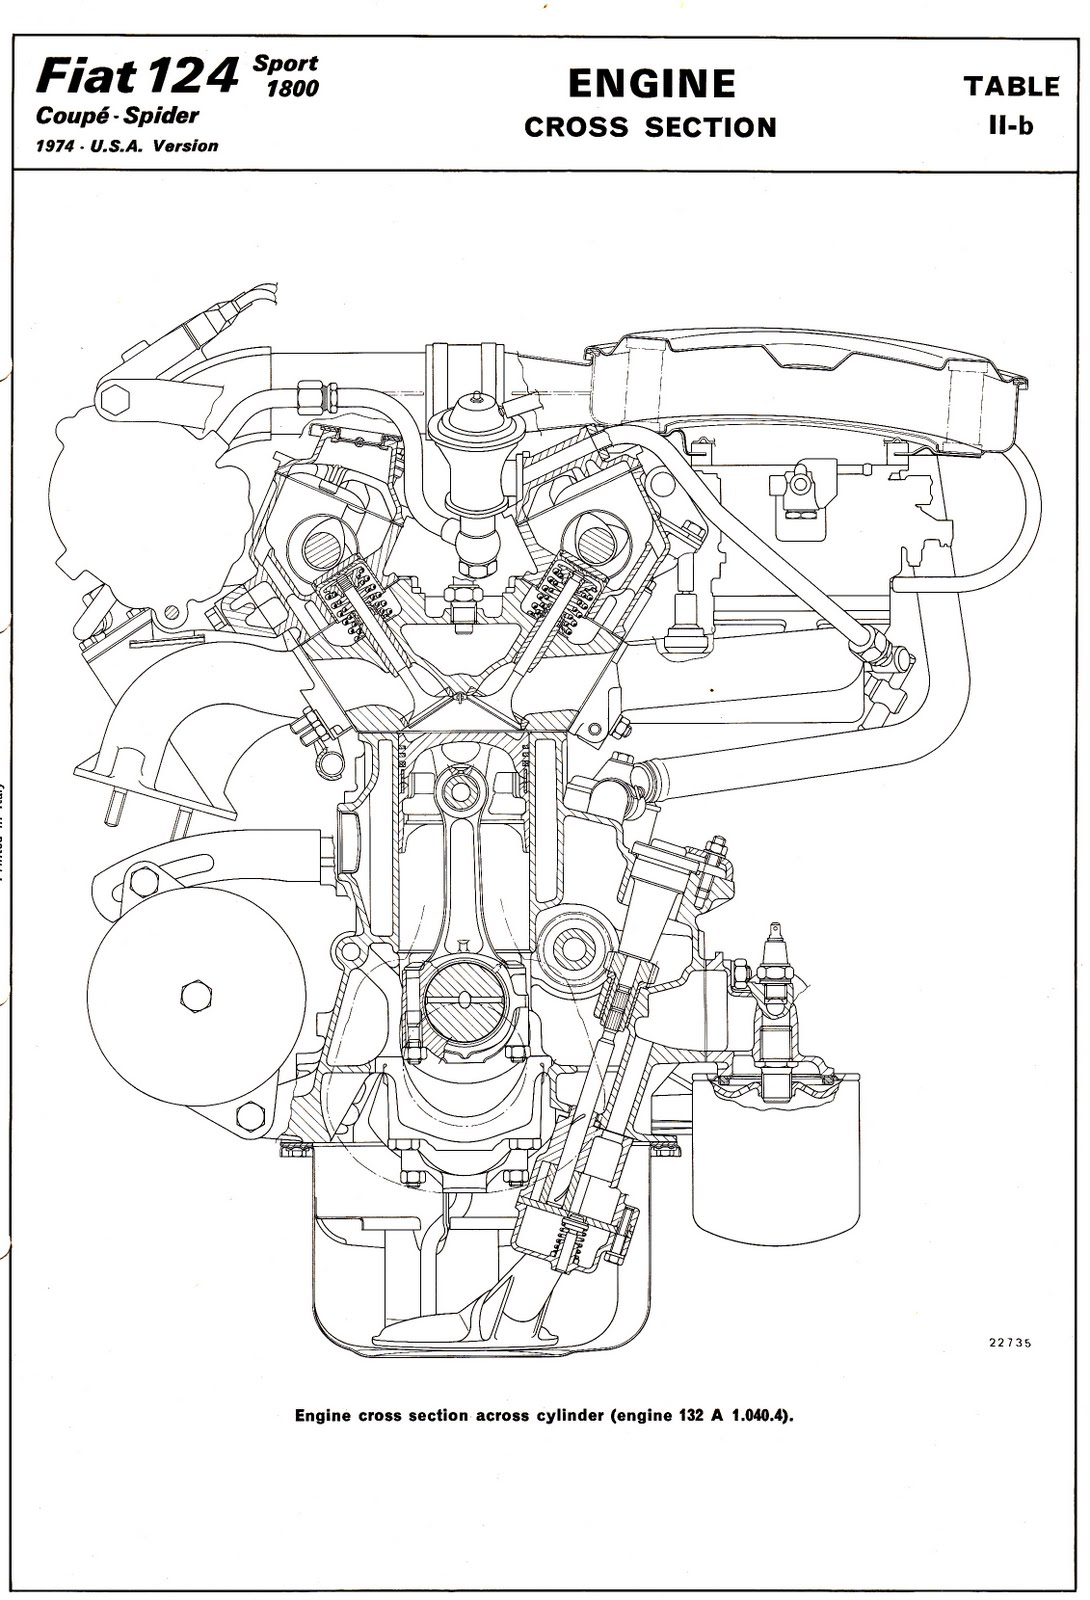 Fiat 131 Wiring Diagram Excellent Electrical House 1981 Kawasaki Library Rh 81 Bloxhuette De 2012 500